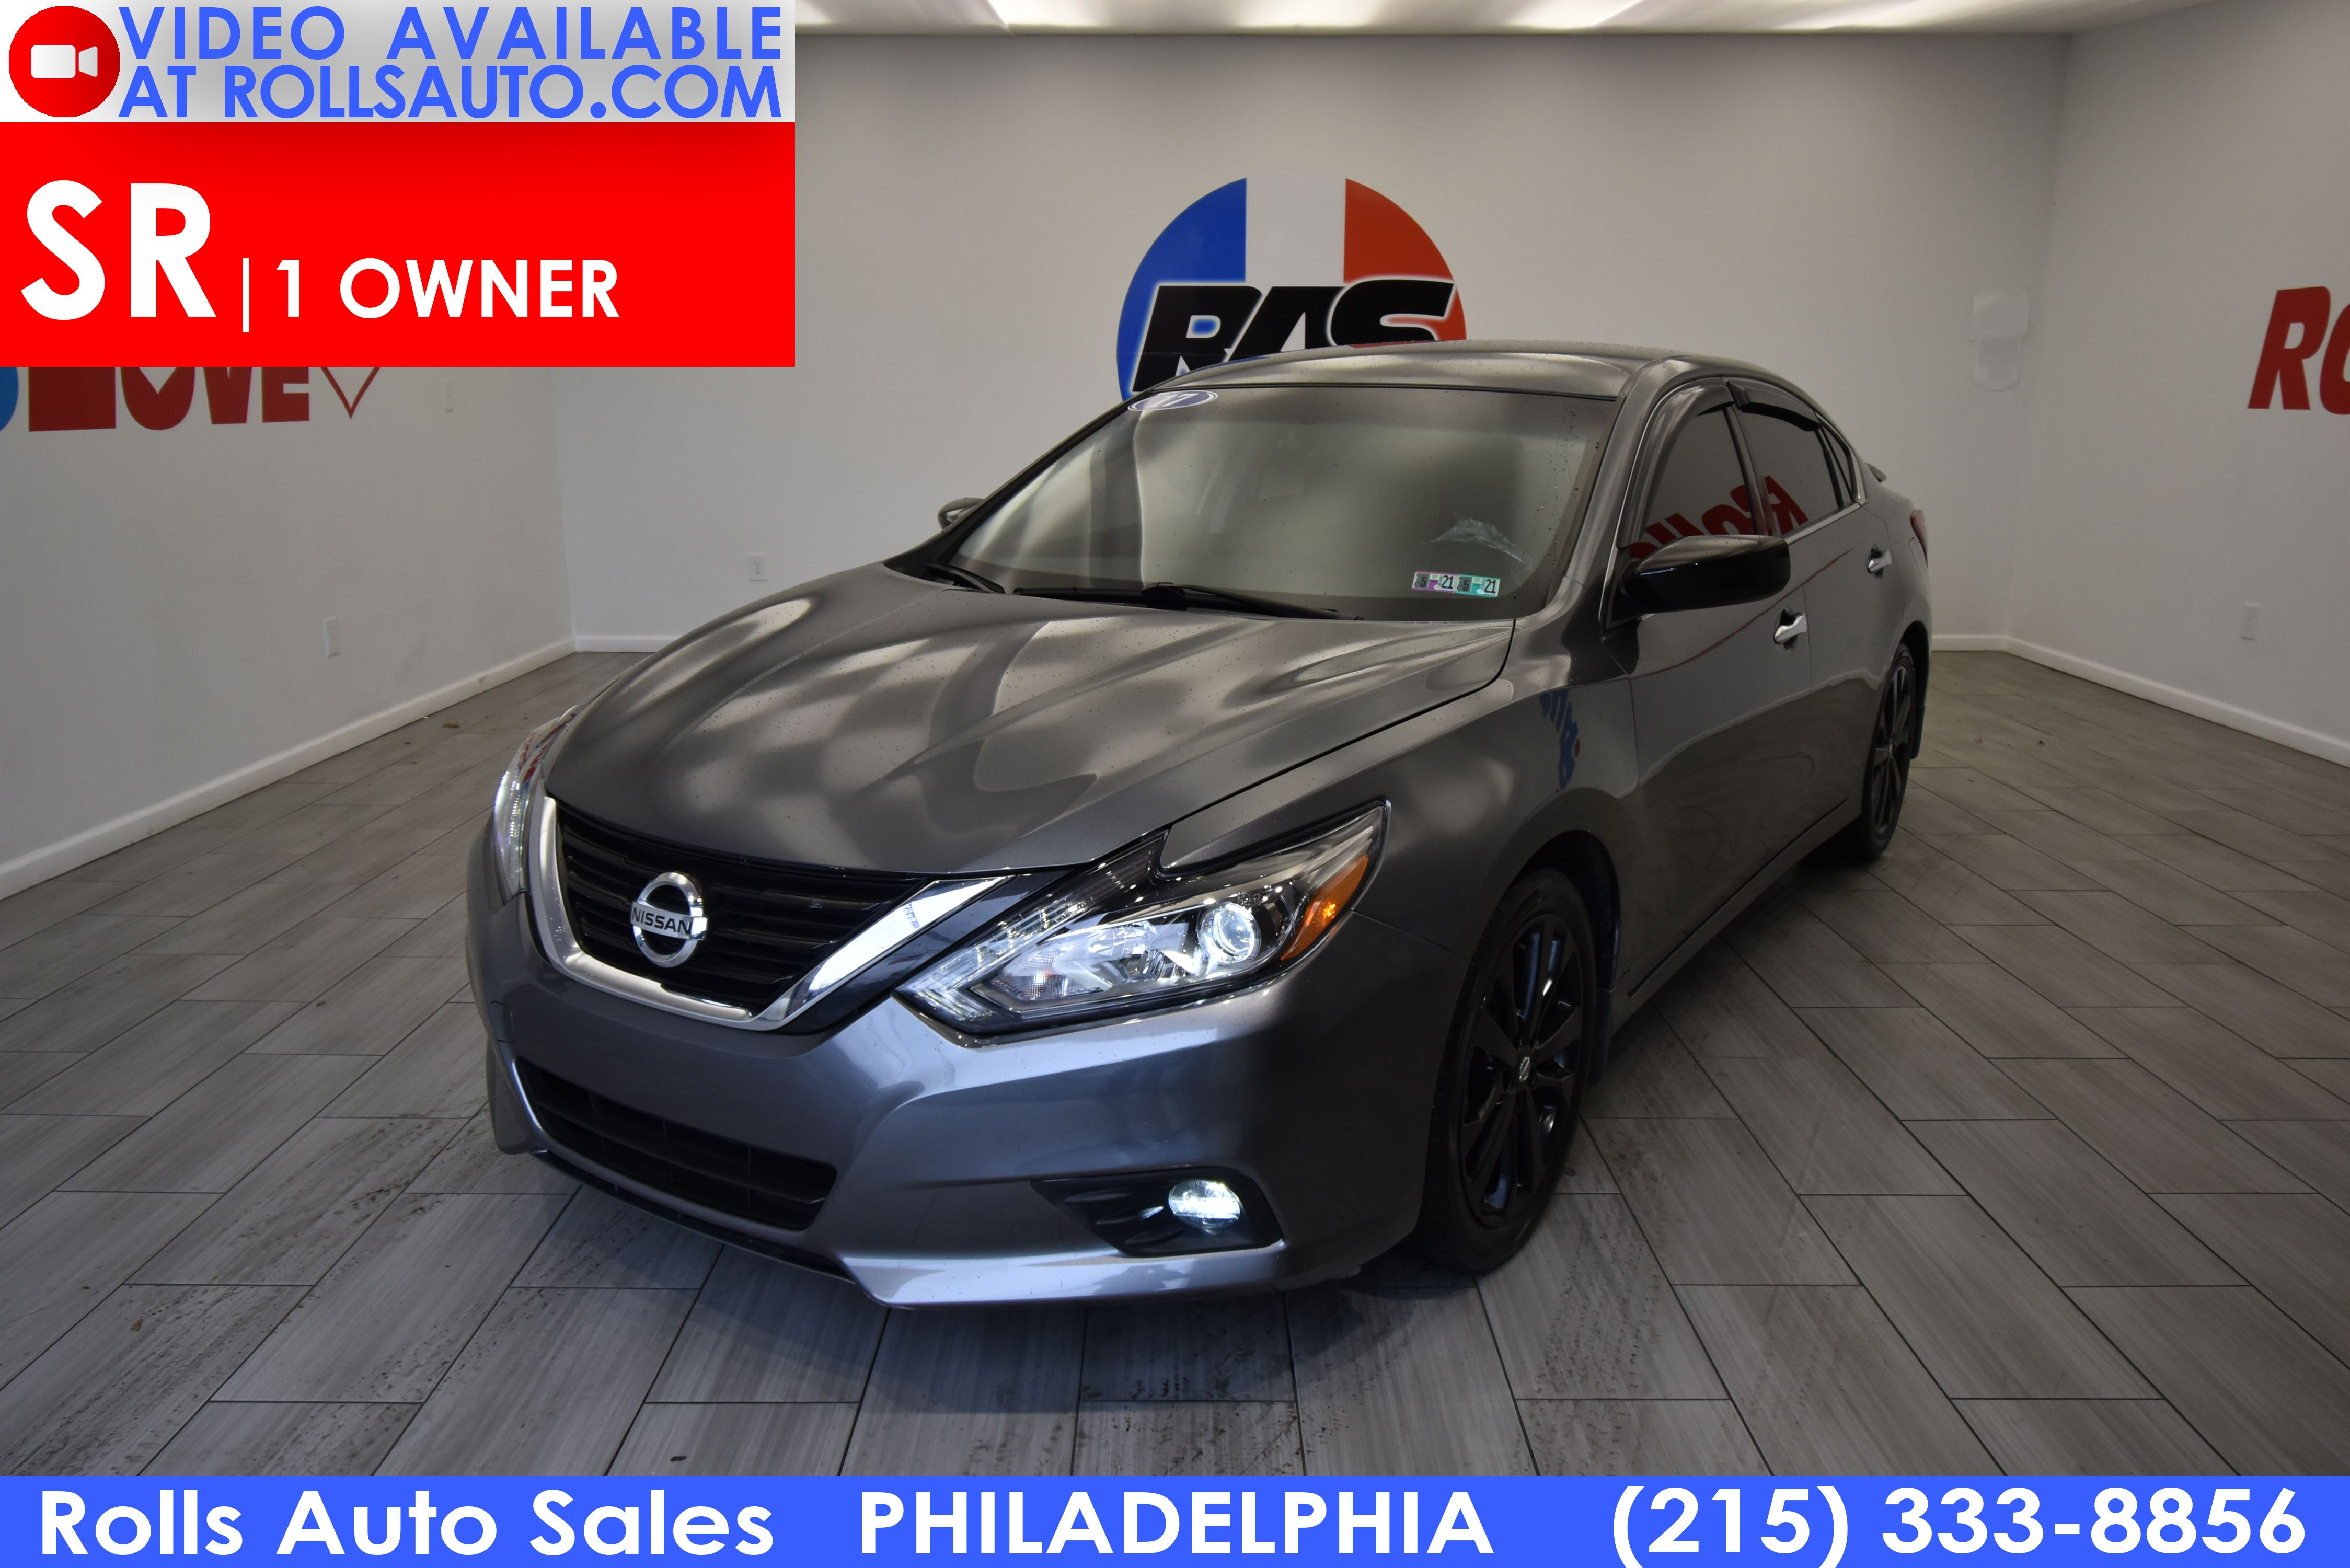 Pre-Owned 2017 Nissan Altima SR